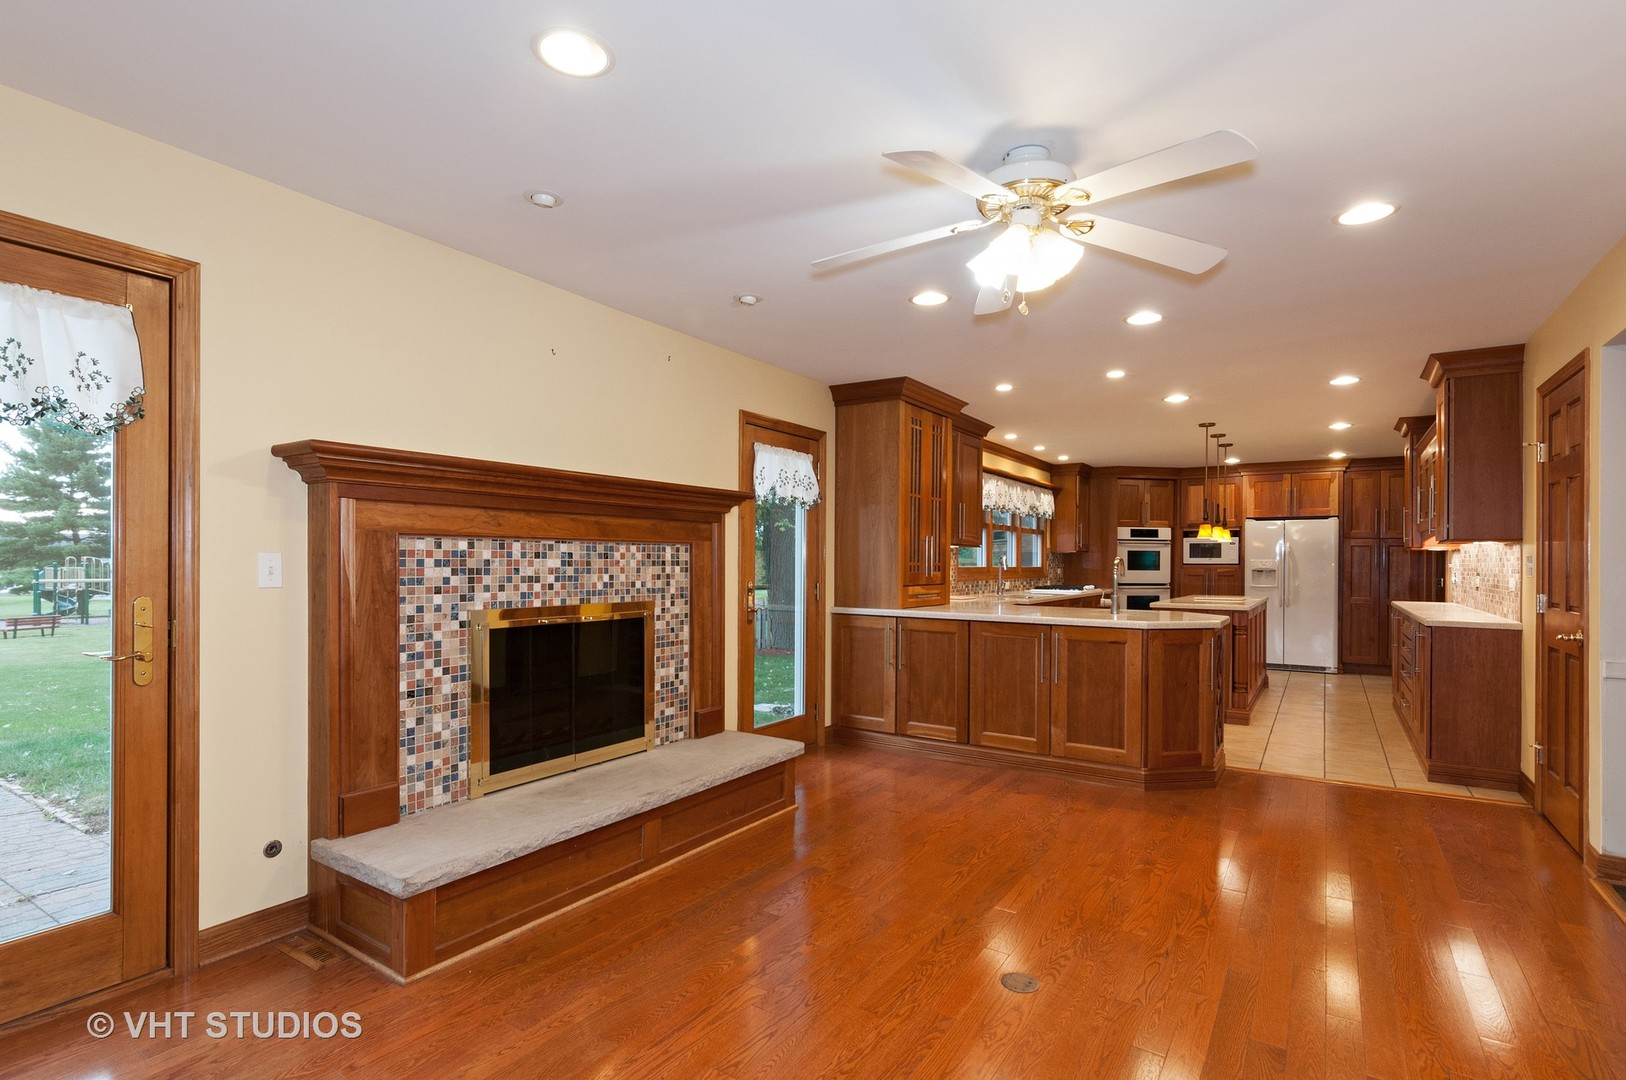 506 Wing, St. Charles, Illinois, 60174